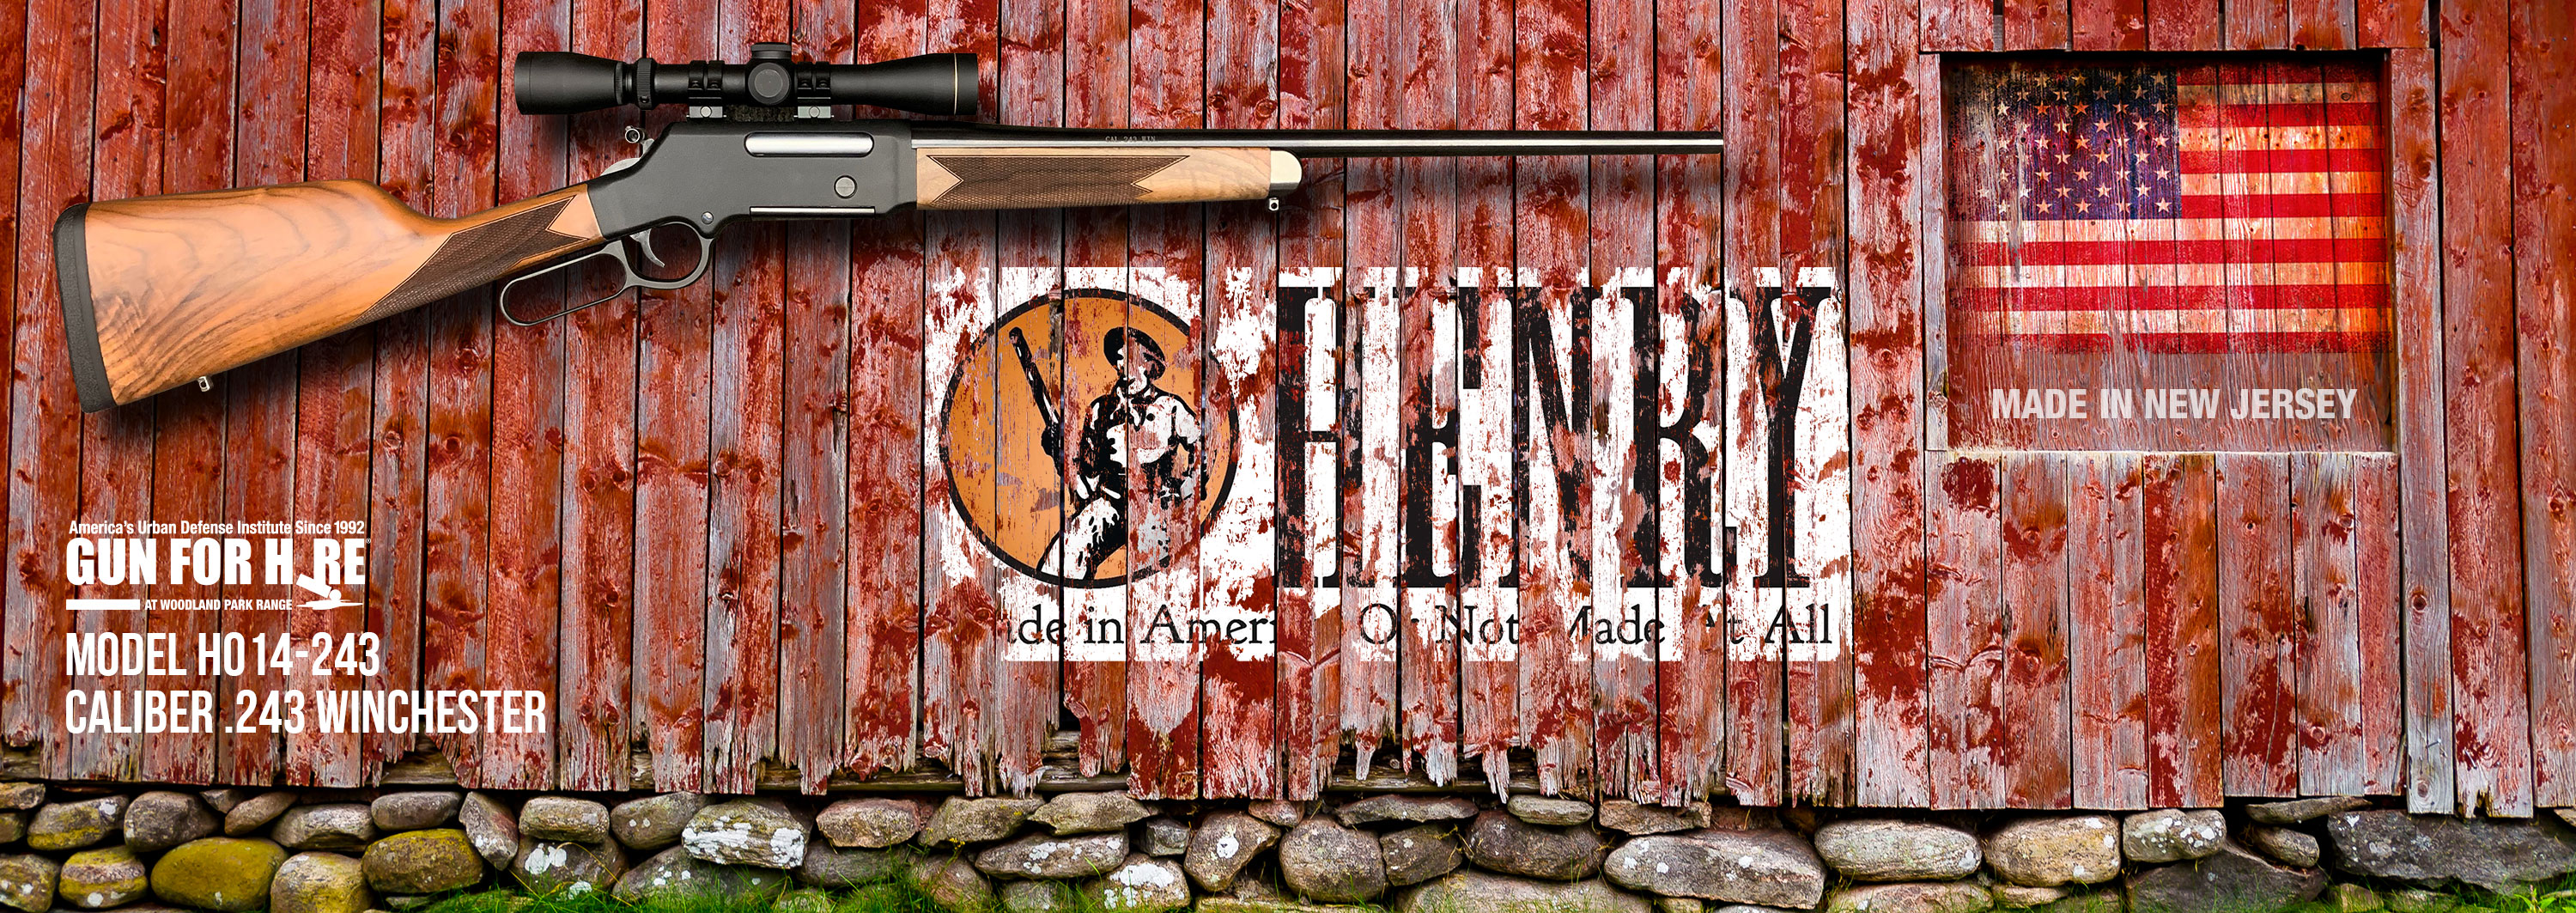 Henry Gun Rental - Home 12-14